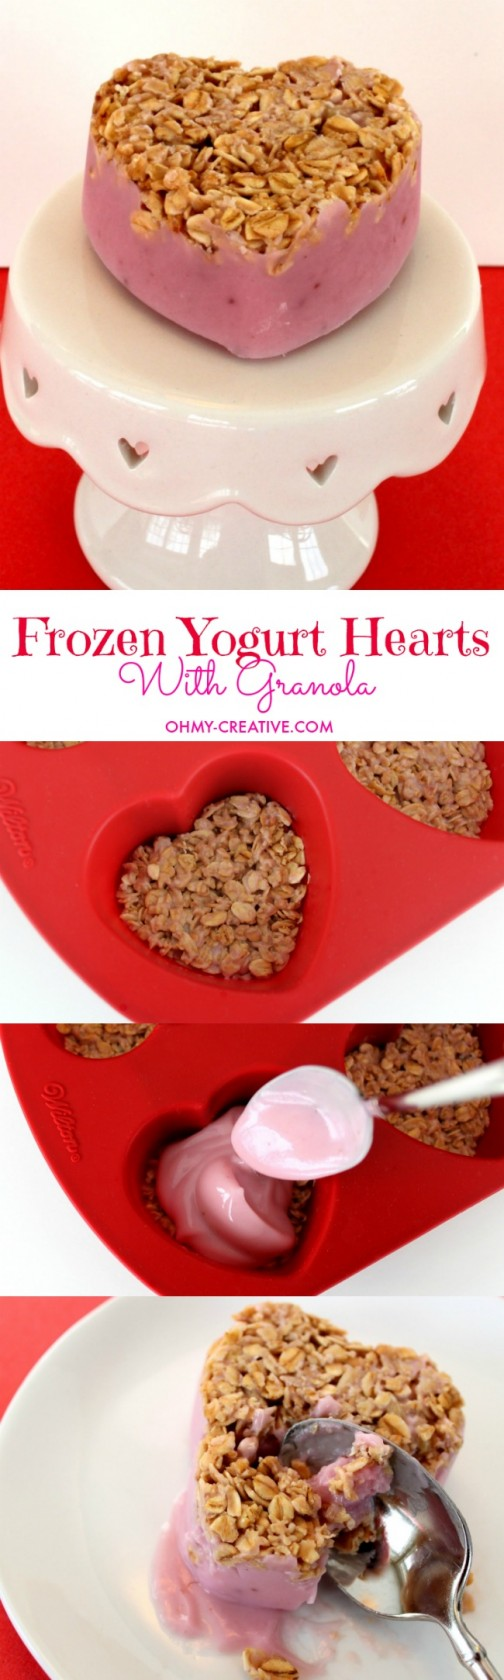 Frozen Yogurt Hearts for Valentine's Day